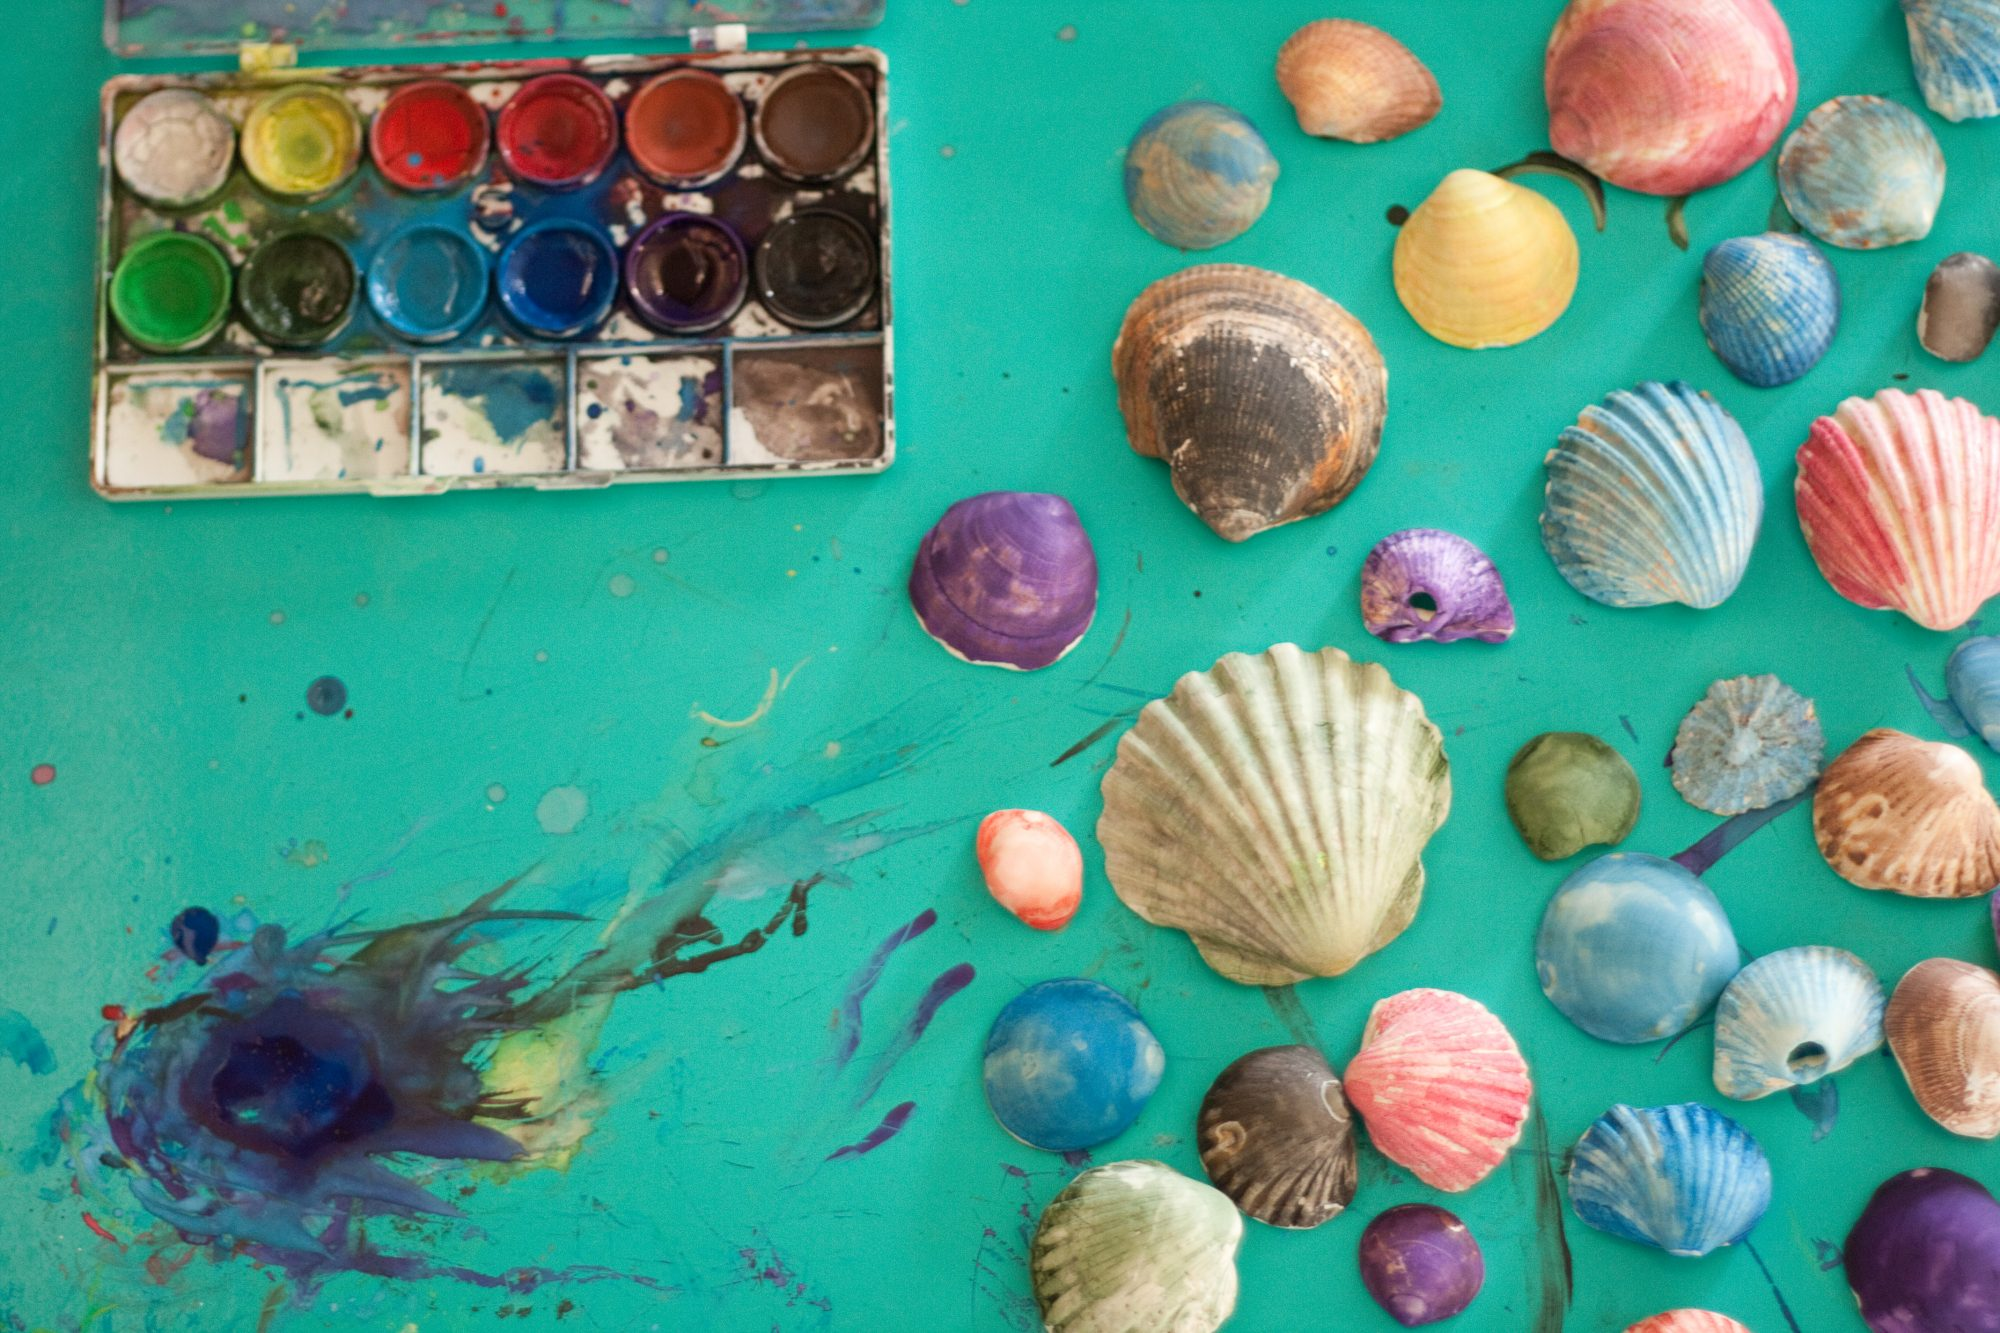 Watercolor painted sea shells over a green stained background